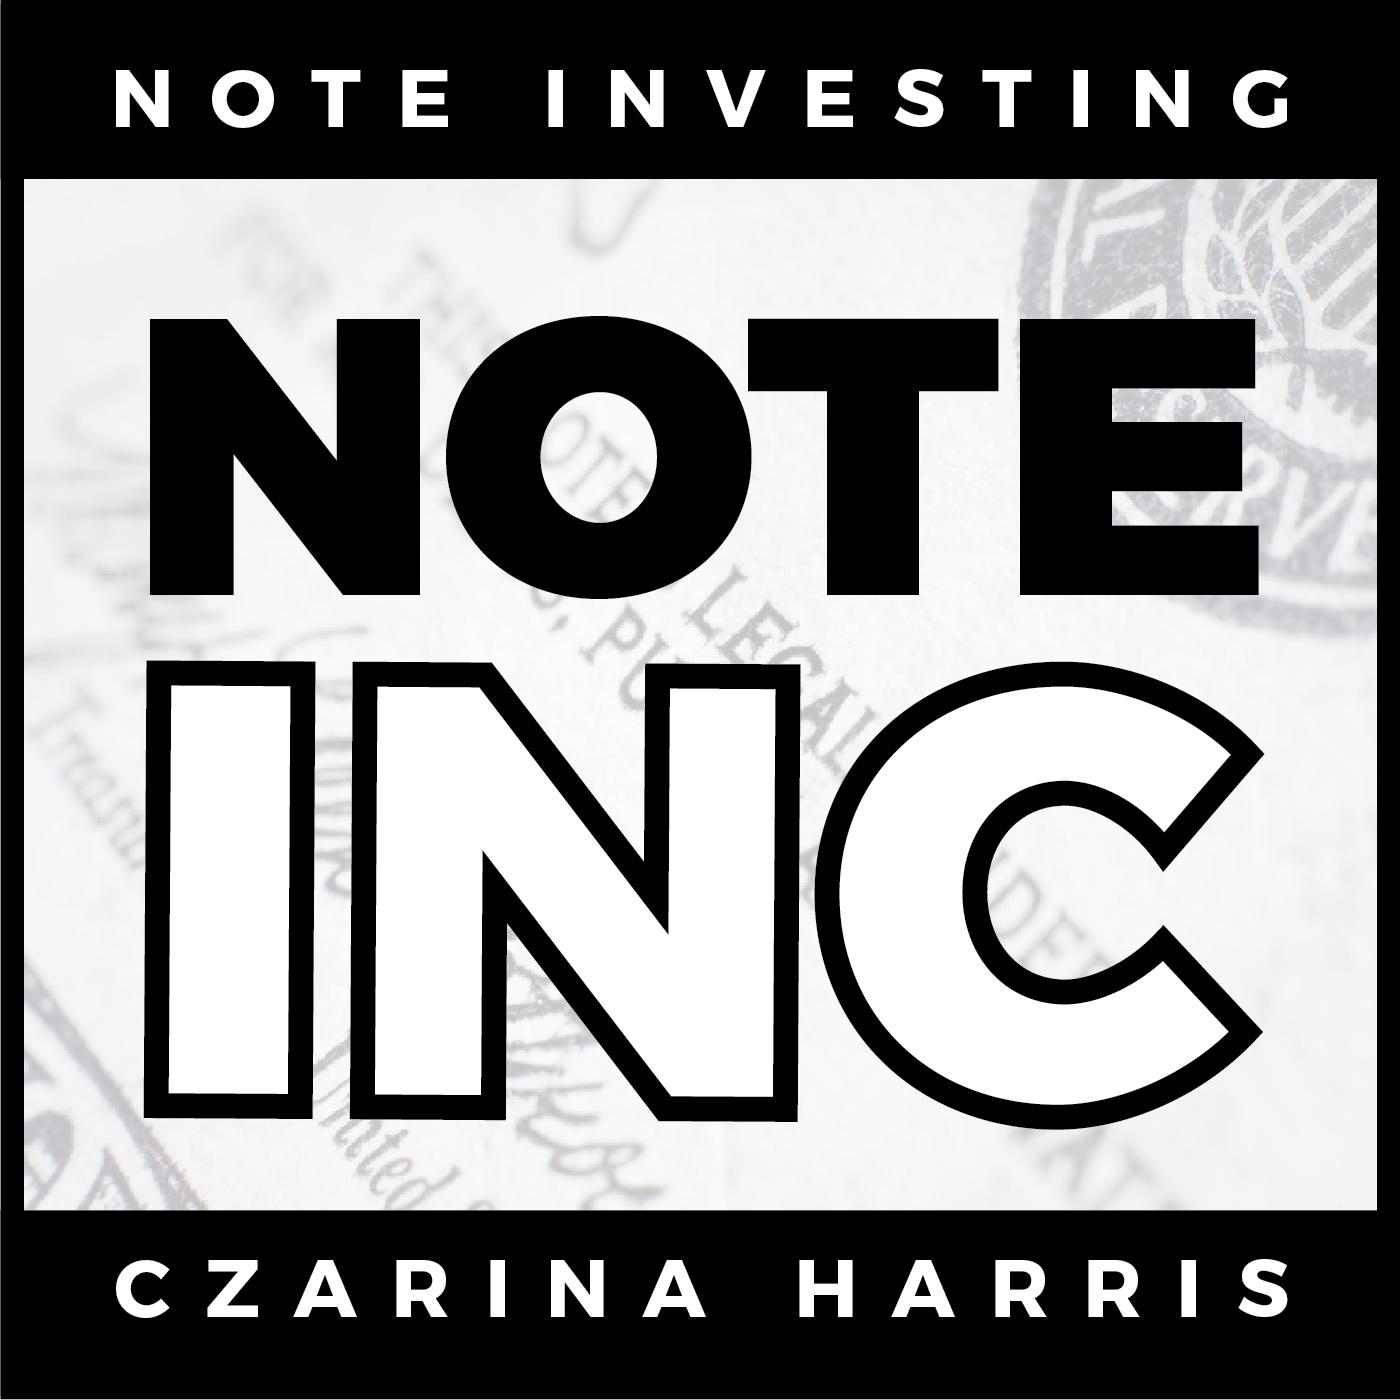 037: Investor Relations: How to Get Funding for Your Deals as a Broker